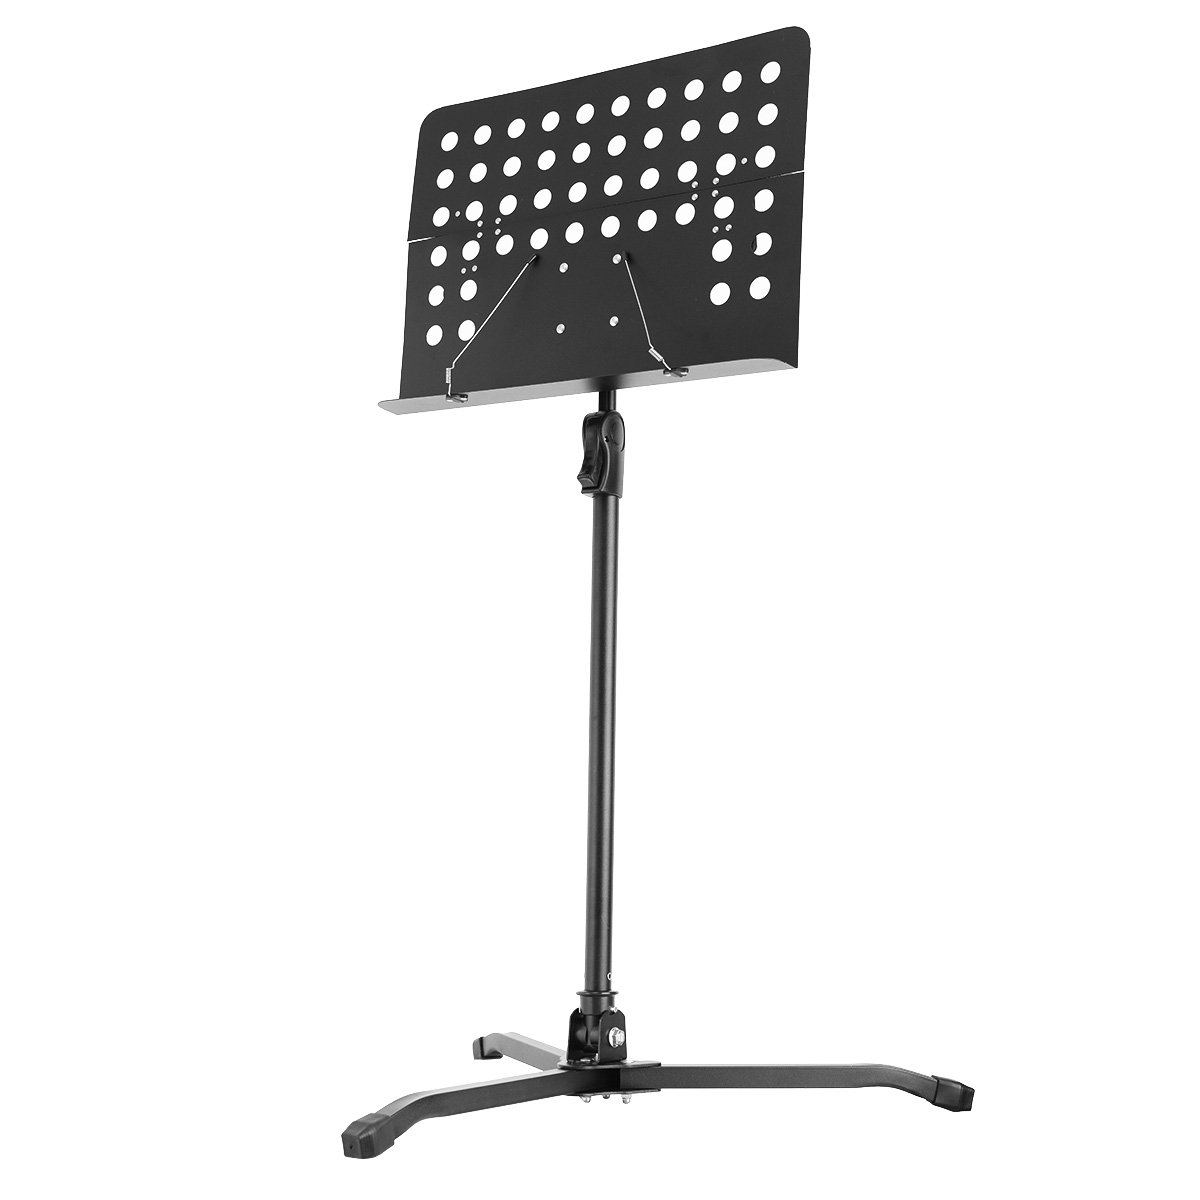 PaPaJet Professional Collapsible Folding Orchestra Sheet Music Stand Portable Music Stand with Carrying Bag (Black) 4336350096